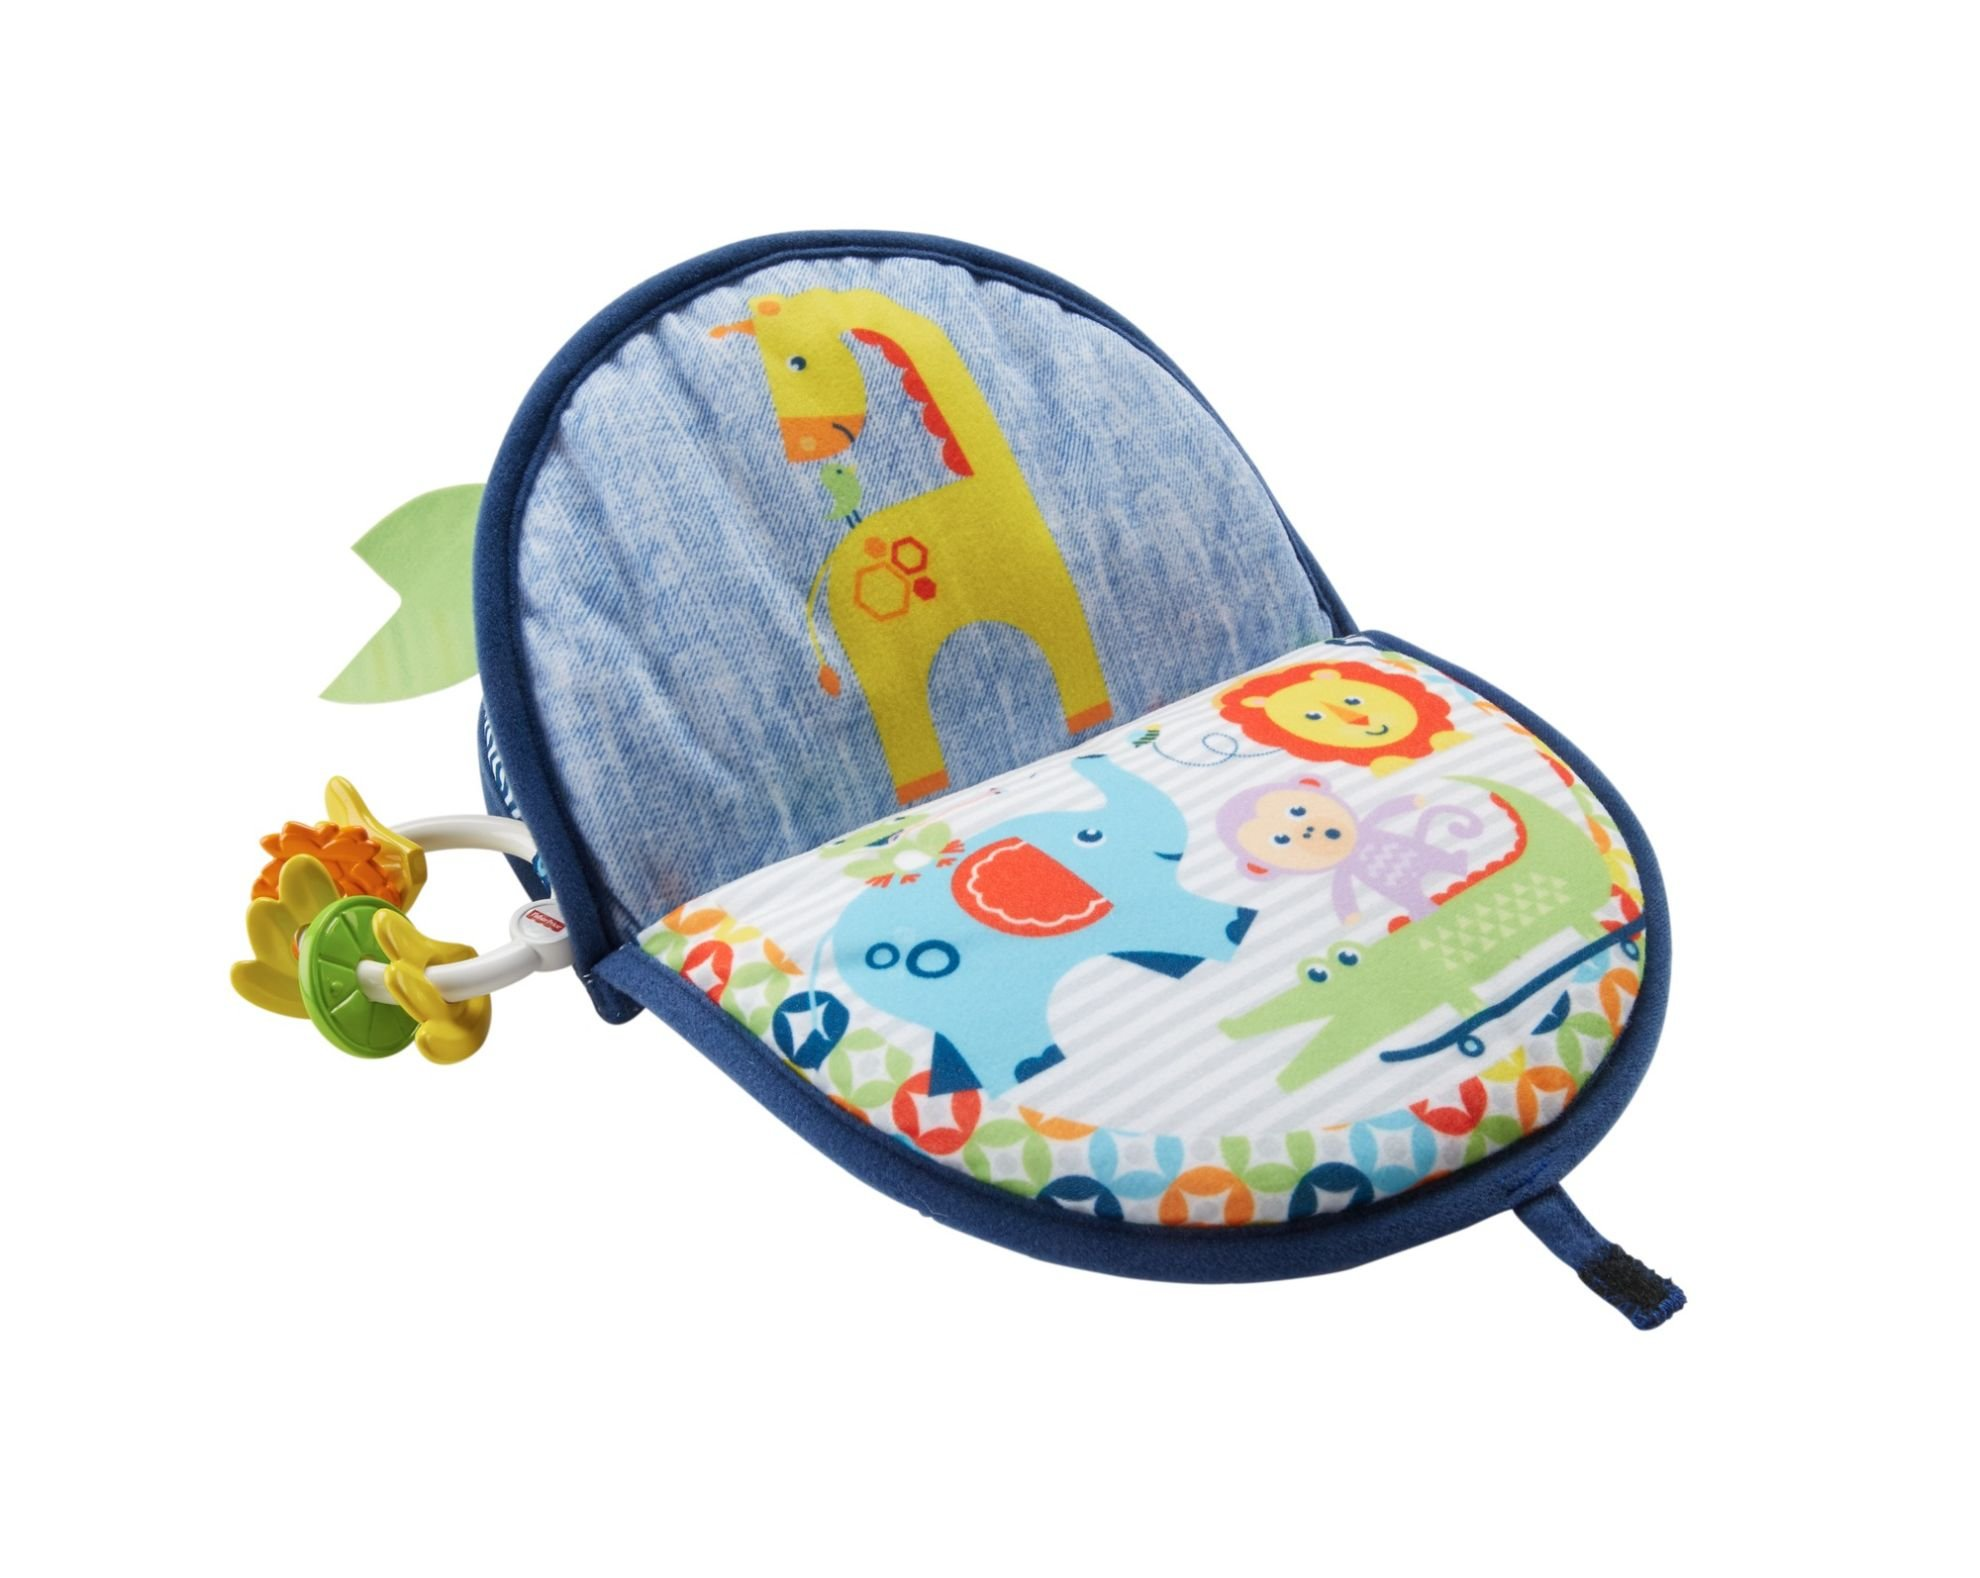 Fisher-Price Monkey Mirror, New-born Tummy Time and Sit Sensory Toy with Textures and Colours, Suitable from Birth 2